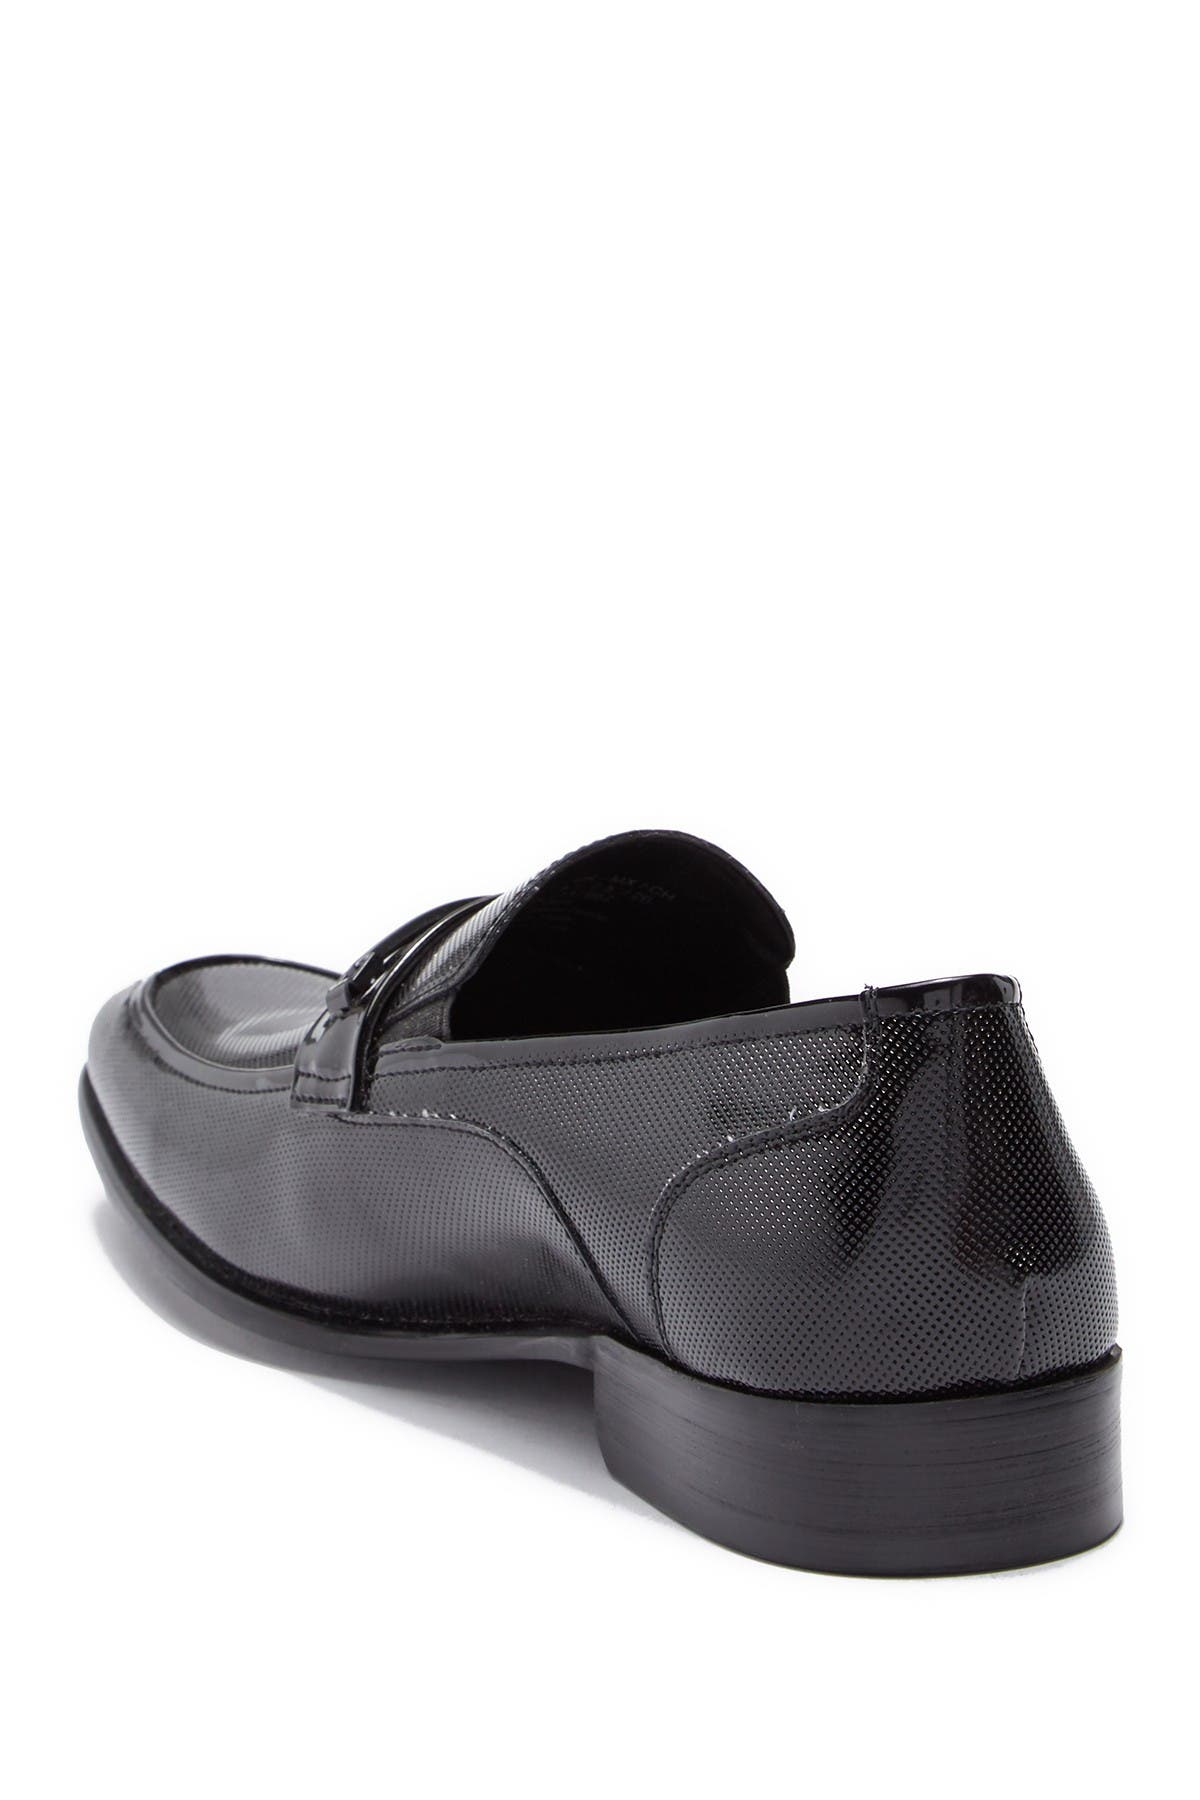 Image of Kenneth Cole Reaction Paxon Slip-On Loafer